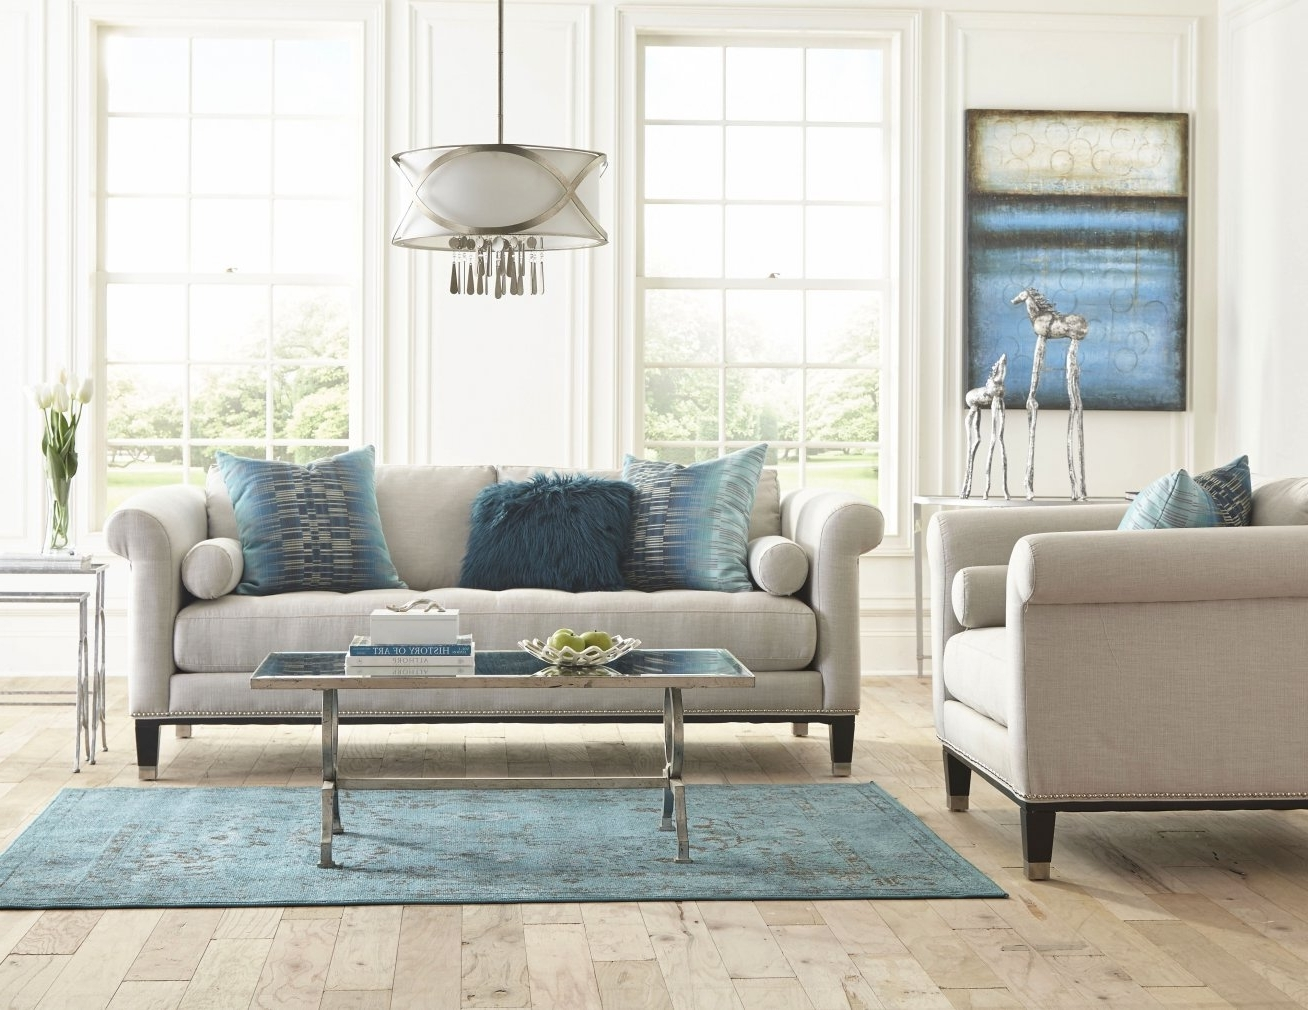 Trend Dillards Sofas 54 With Additional Sofas And Couches Ideas Pertaining To 2018 Dillards Sectional Sofas (View 20 of 20)